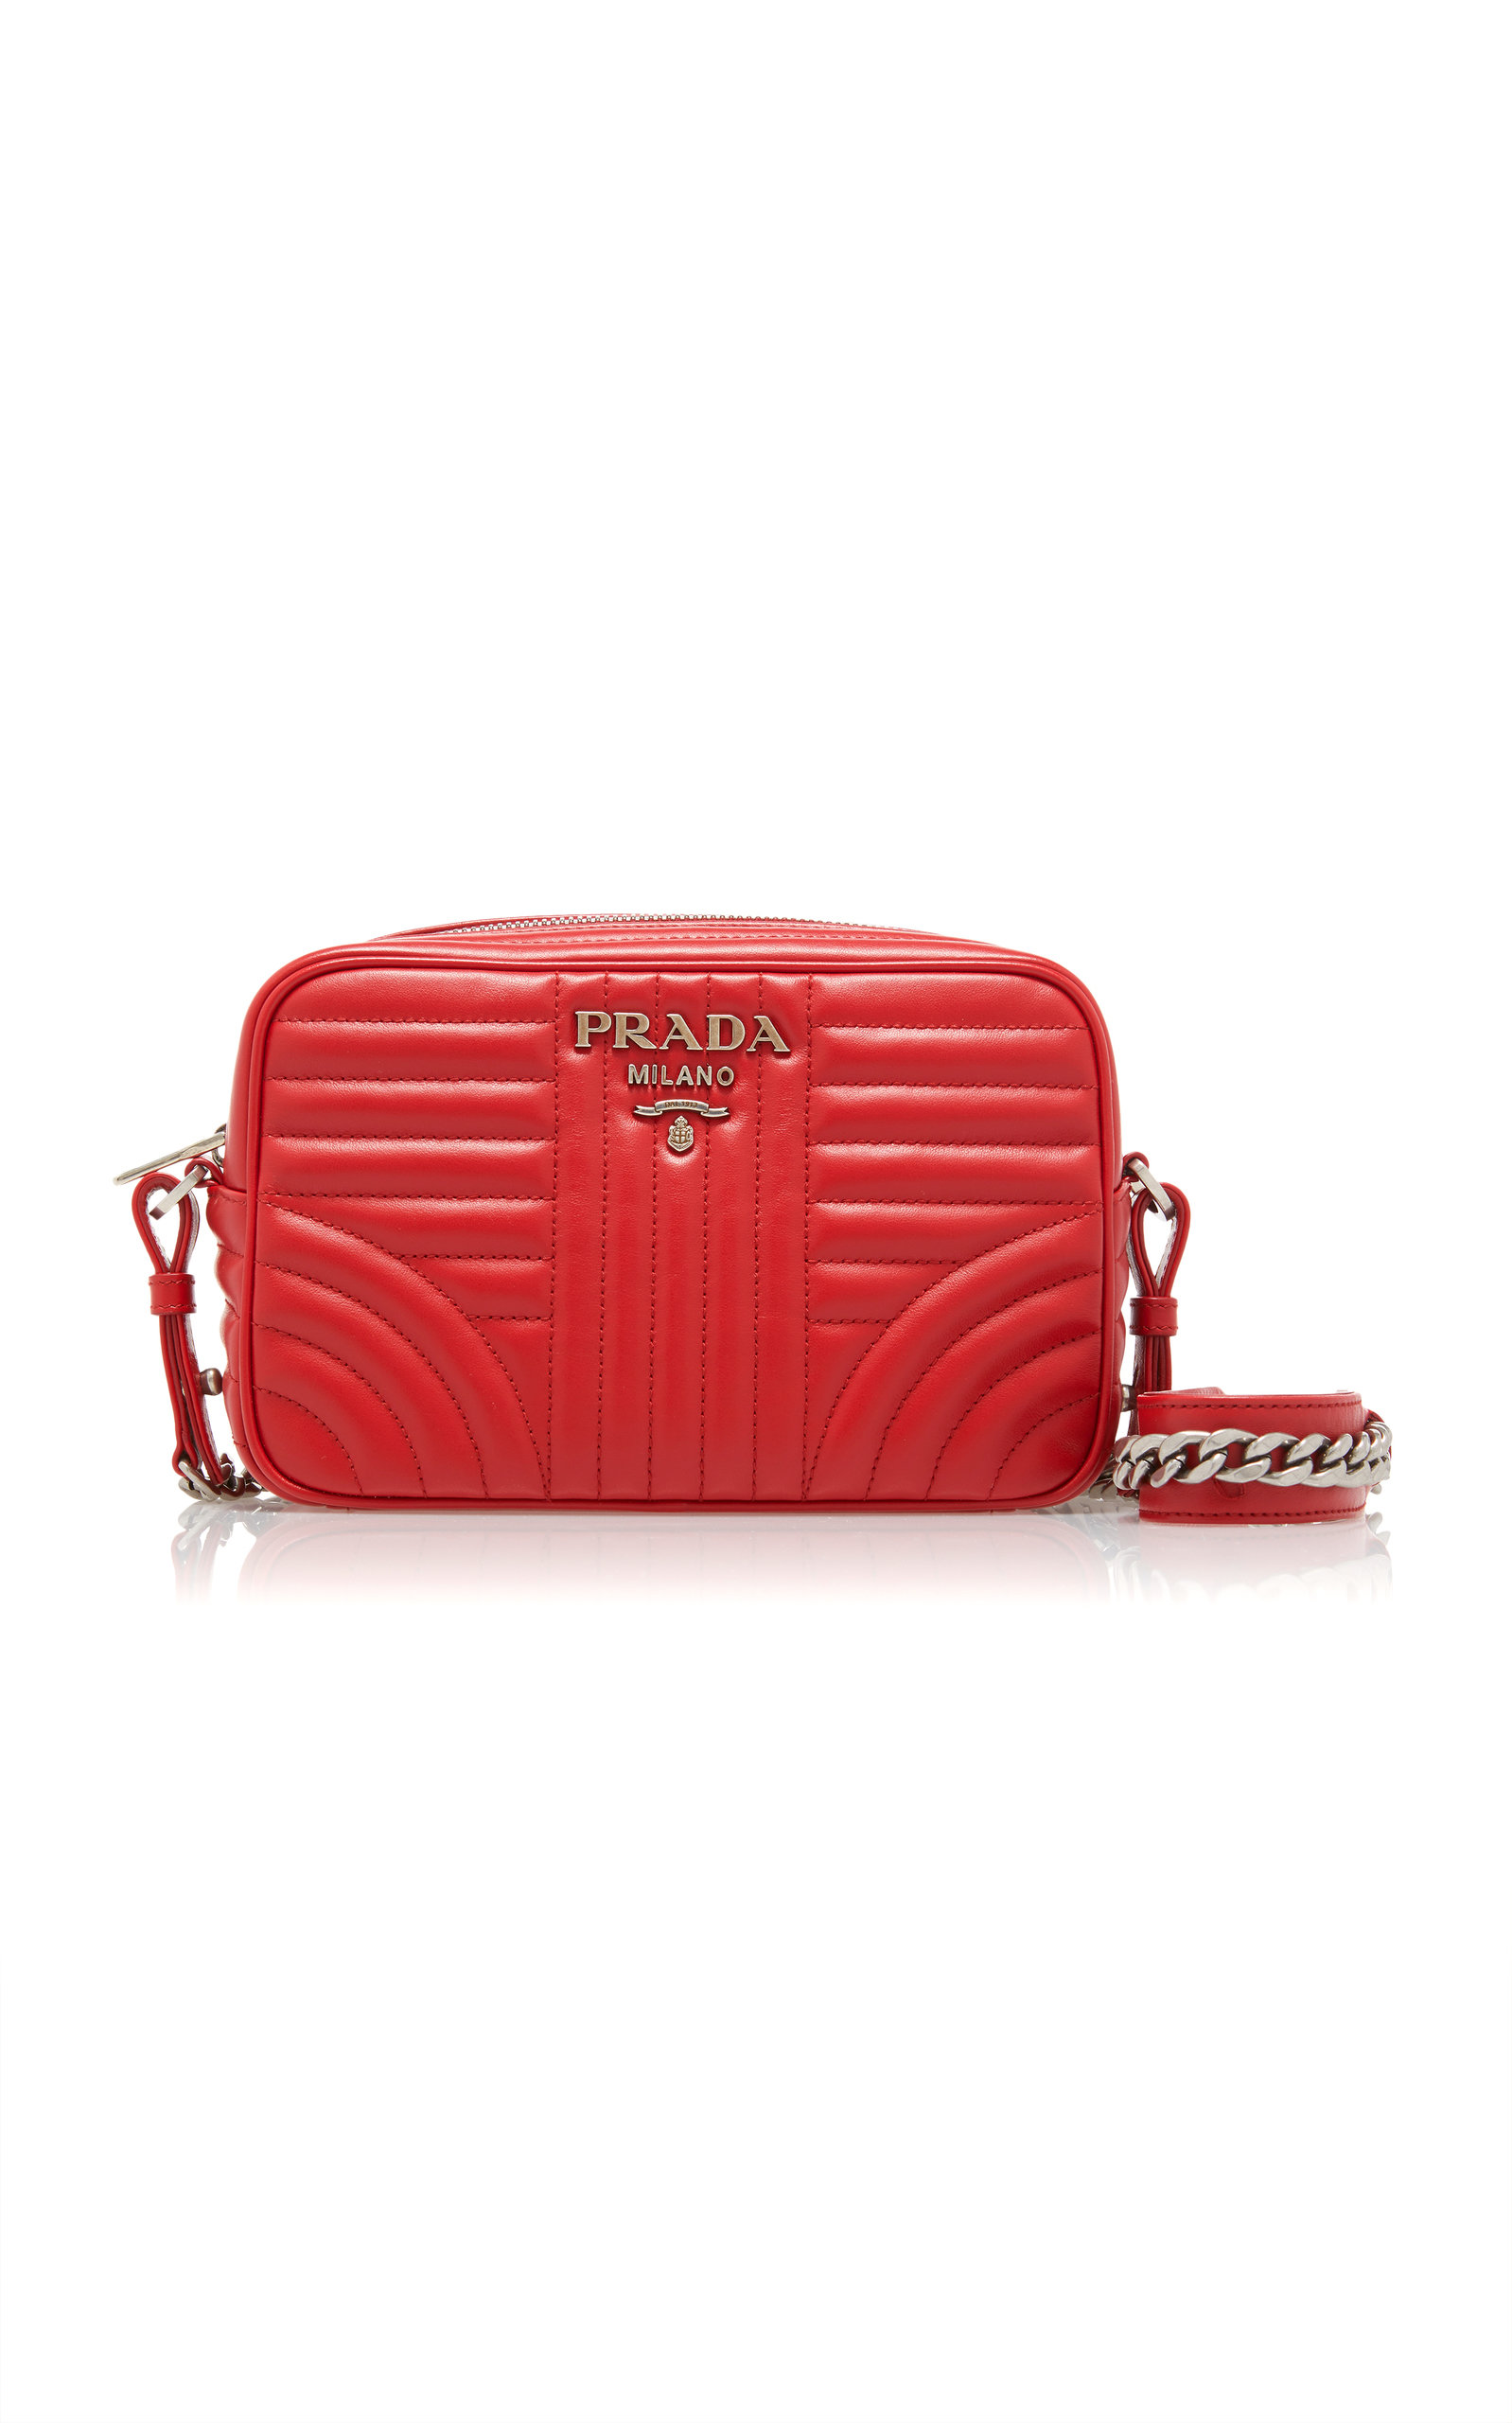 47fc5d577899 PradaQuilted Leather Camera Bag. CLOSE. Loading